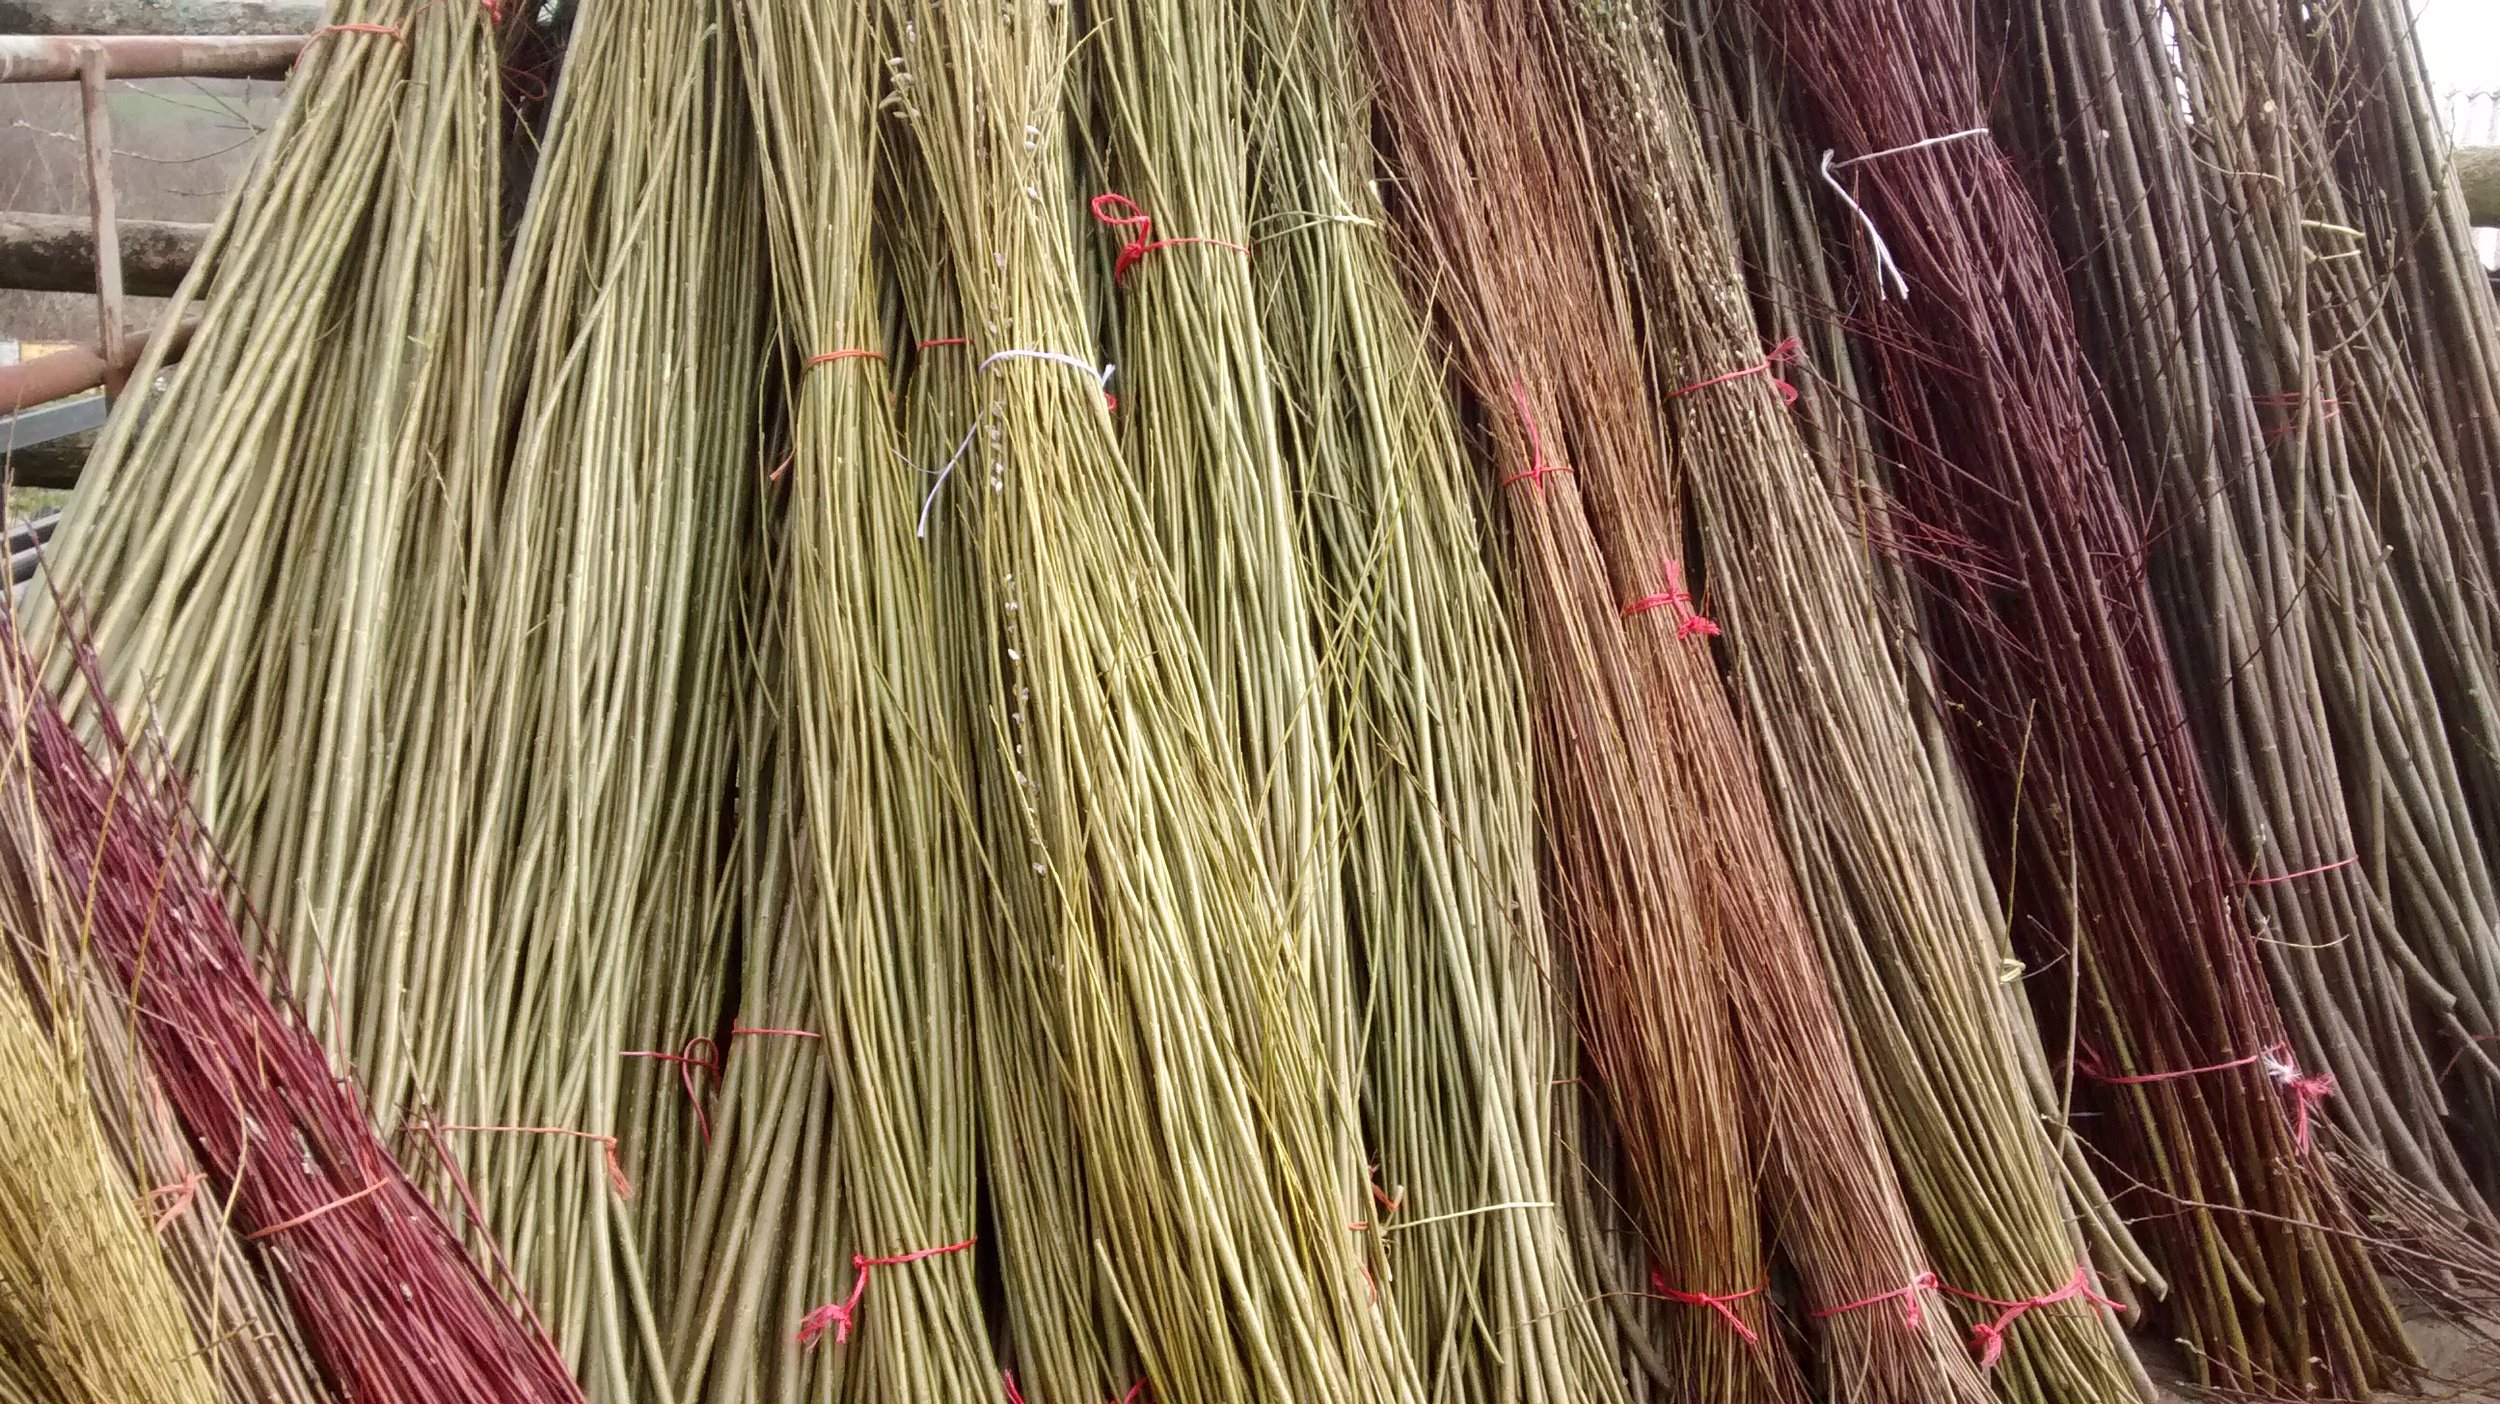 Harvested Willow